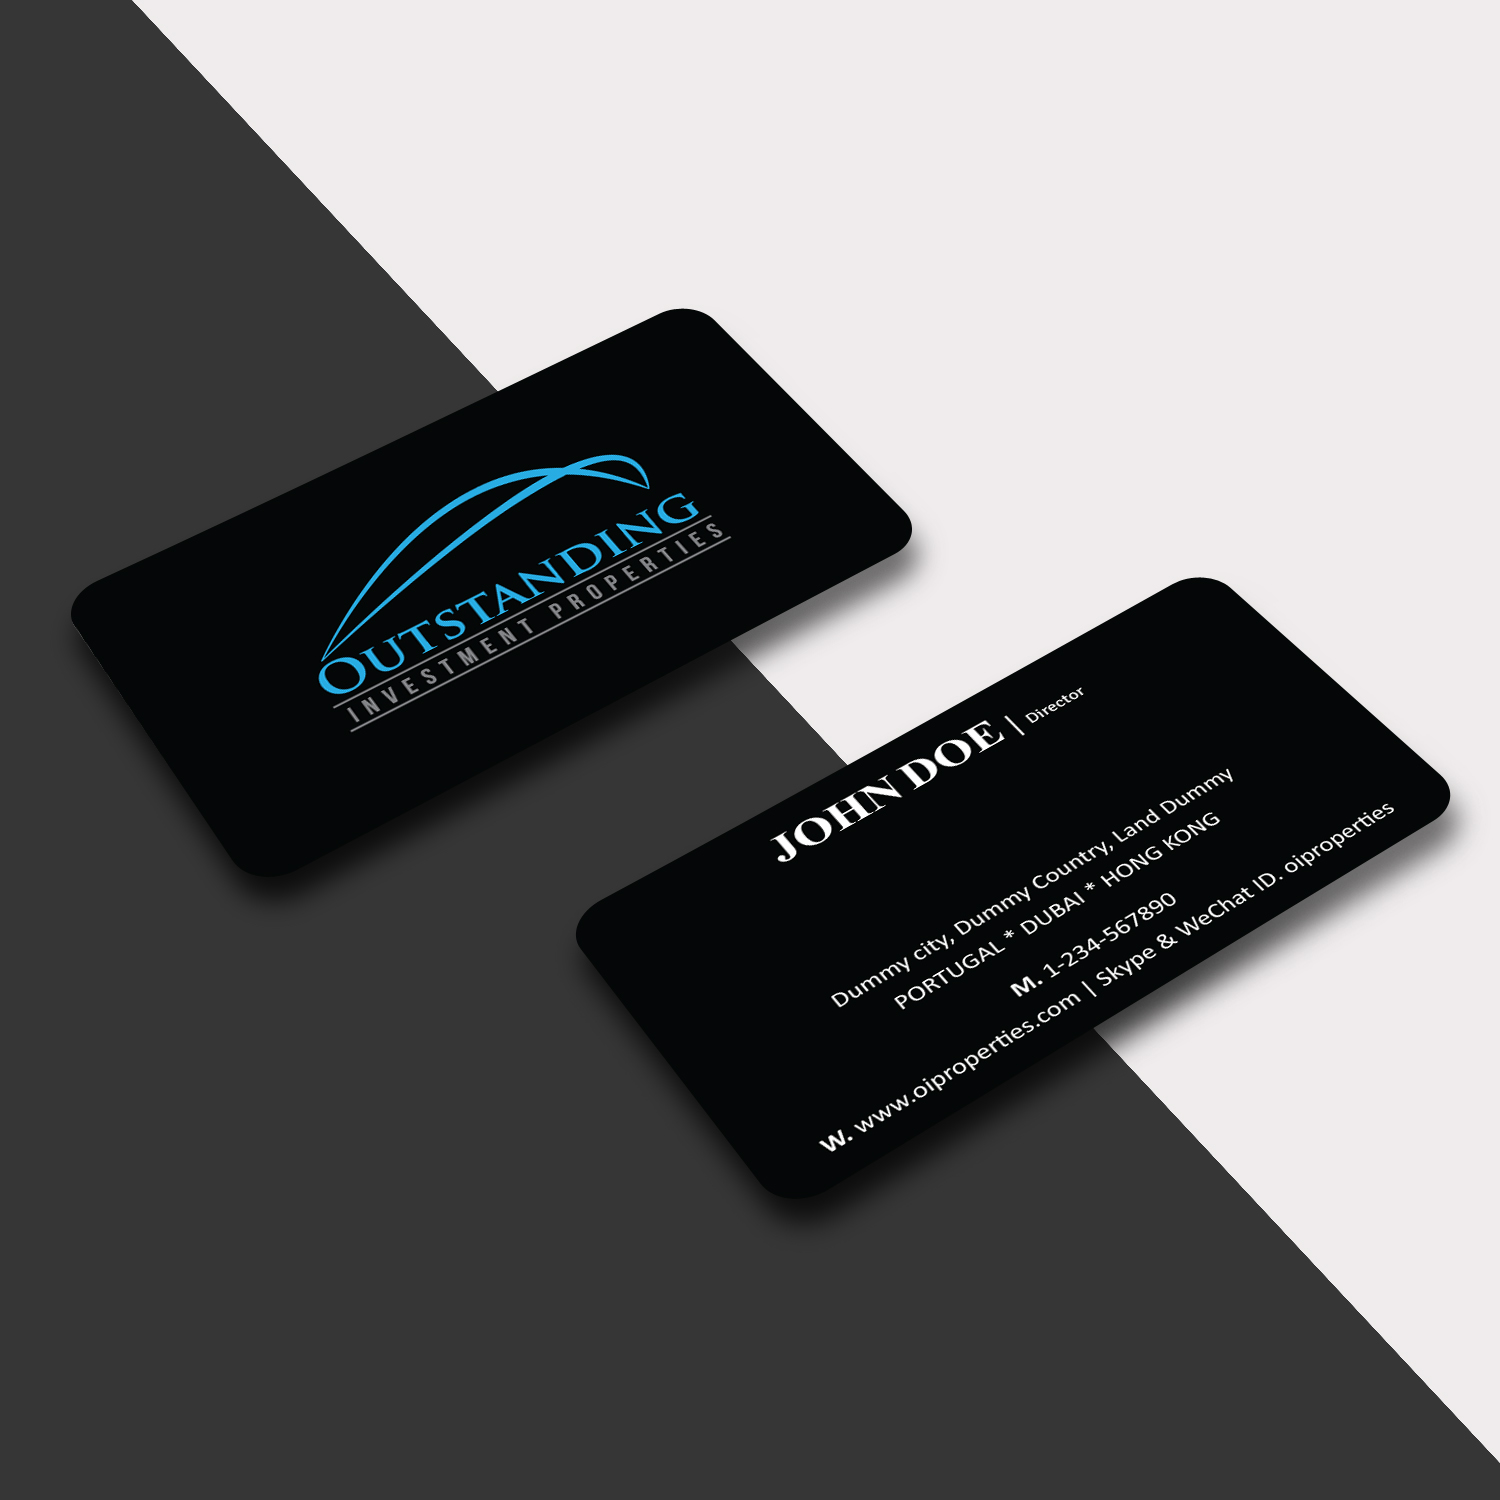 Business Card Design By Creative Jiniya For Outstanding Investment  Properties, Ltd | Design #11758372